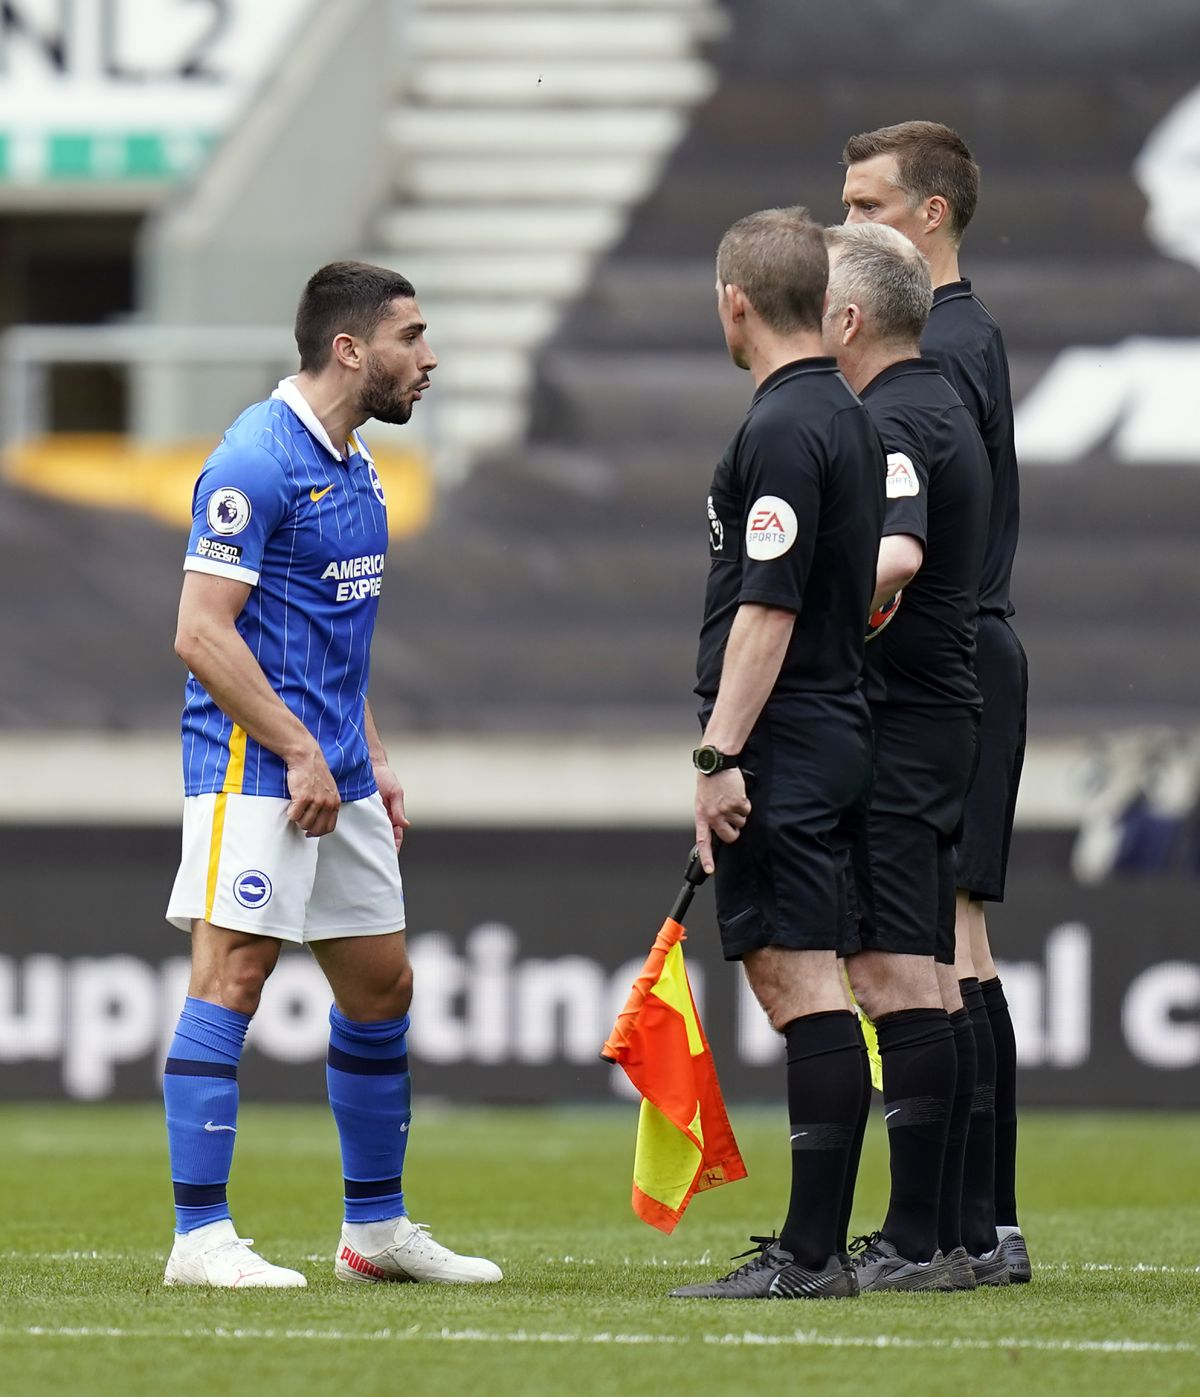 Season over for Brighton's Neal Maupay after FA adds match to his two-game ban